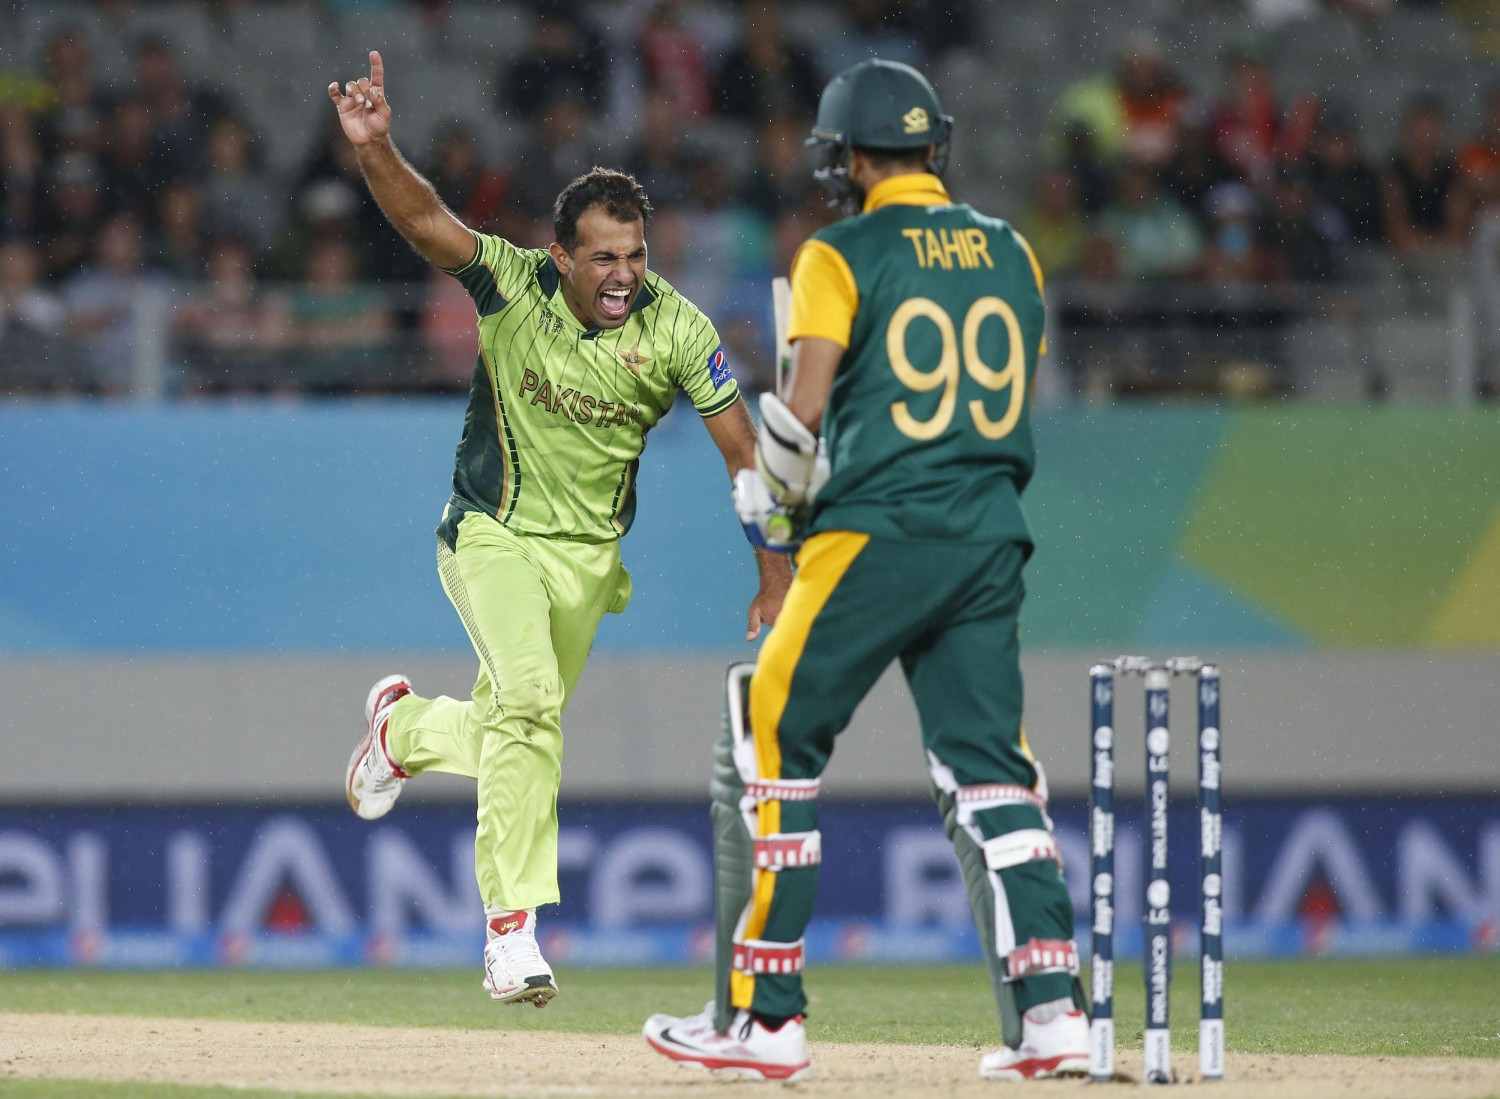 Ali, Irfan and Riaz among the wickets as South Africa are bowled out for 202 in 33.3 overs.